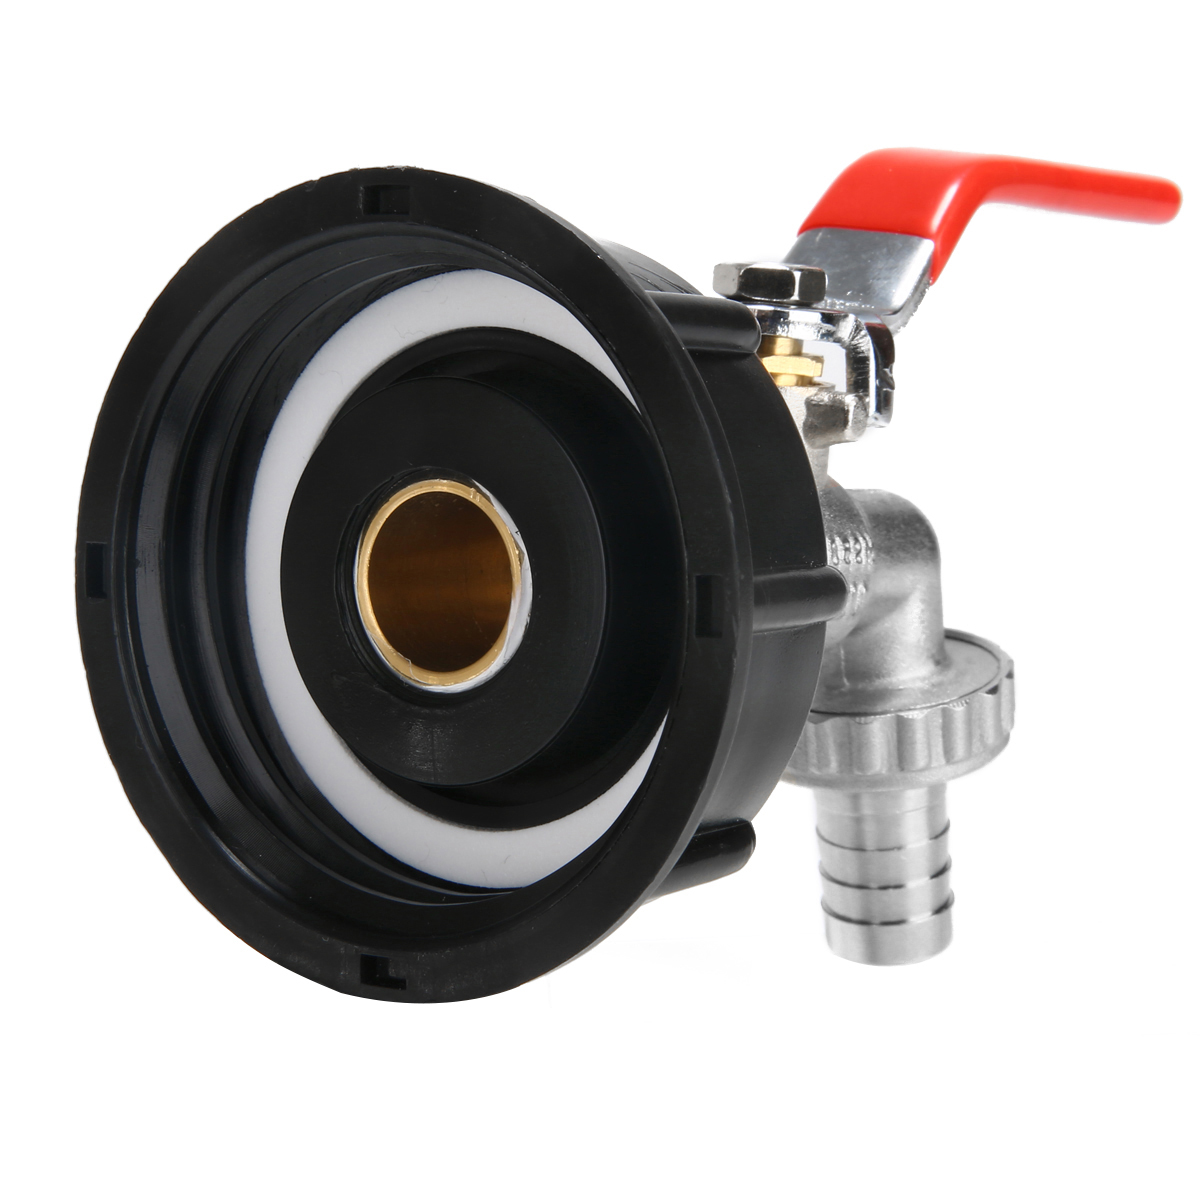 """S60x6 Thread IBC Tank Tap Adapter Connector To Brass Garden Tap 1/2"""" Hose Fitting Oil Fuel Water Replacement Valve Fitting Parts"""